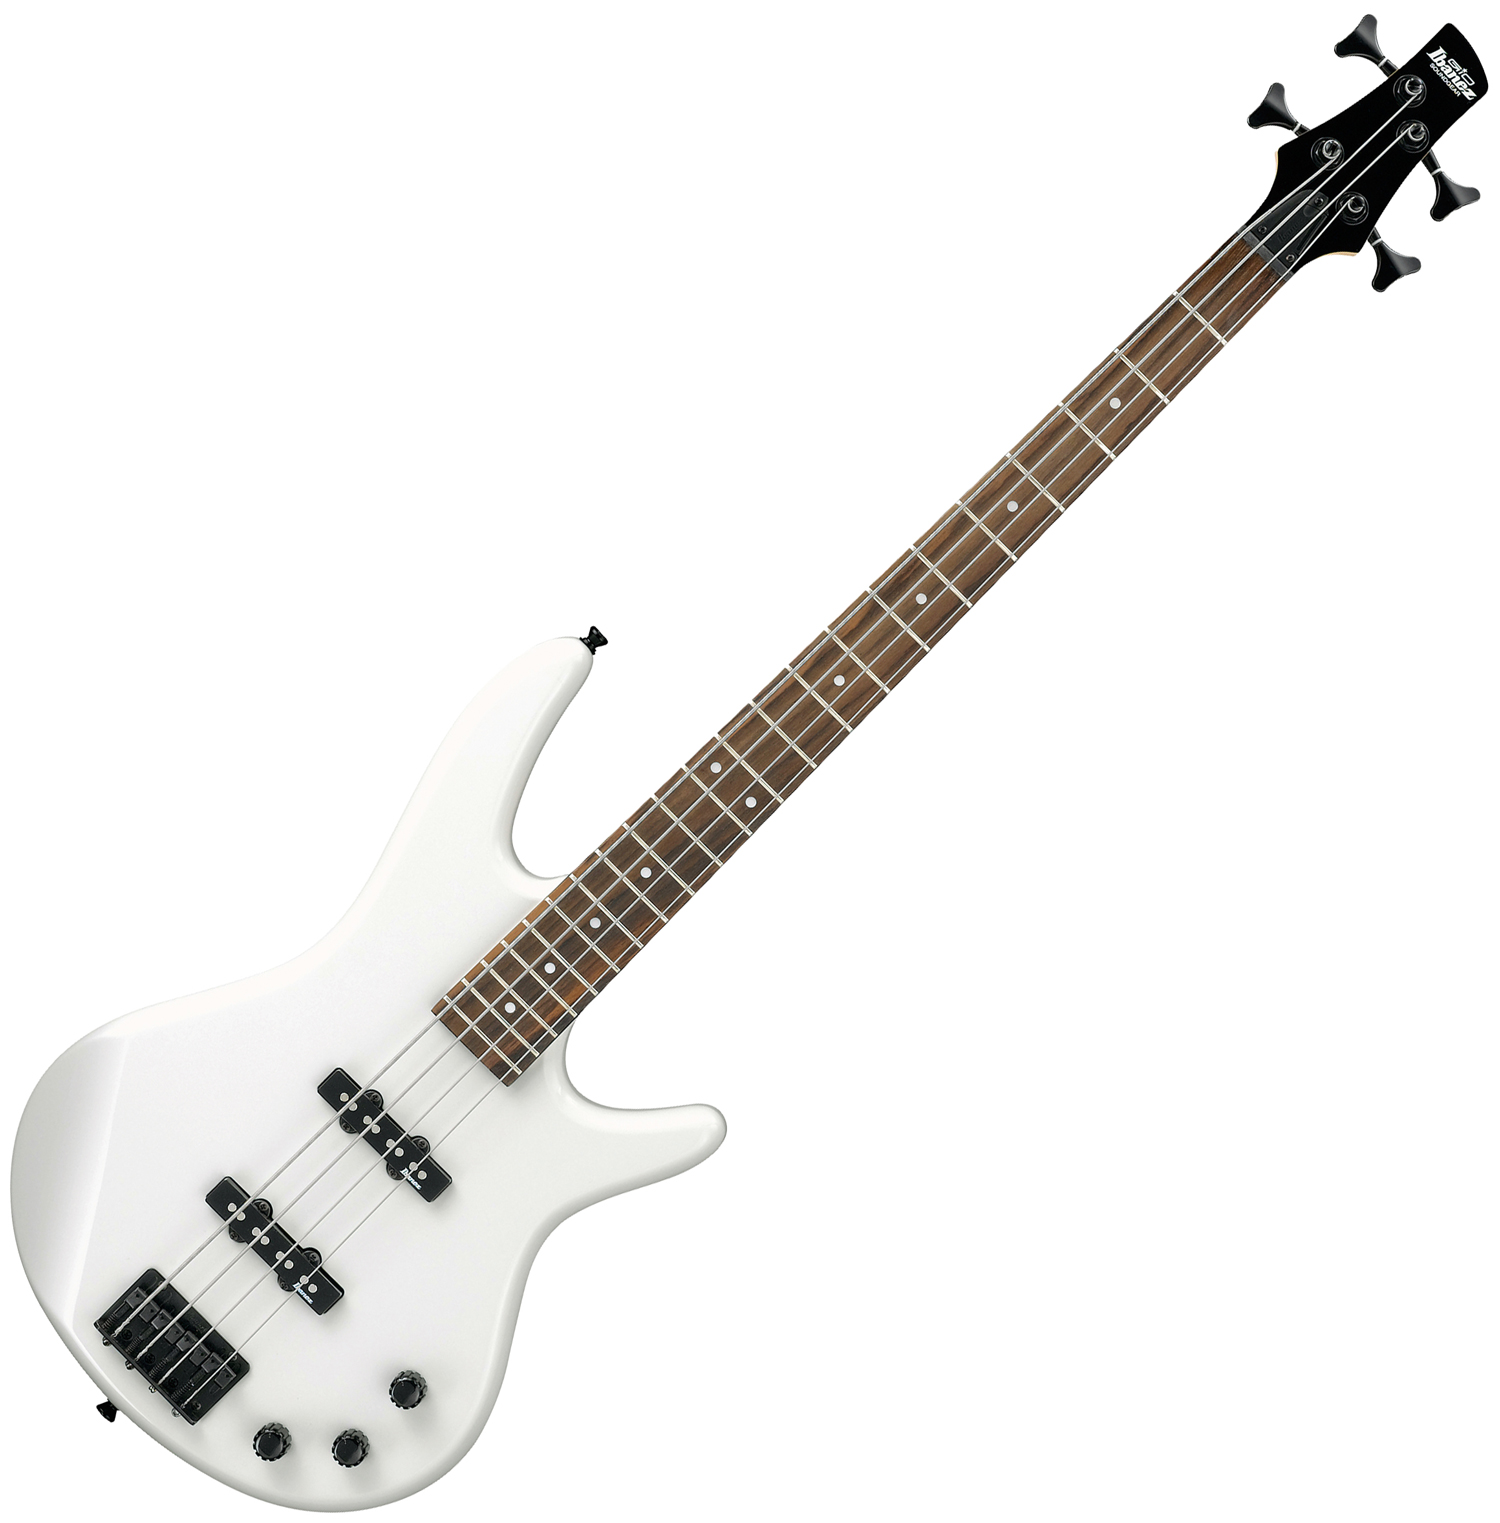 MusicWorks : Guitars - Bass Guitars - 4 String Bass Guitars